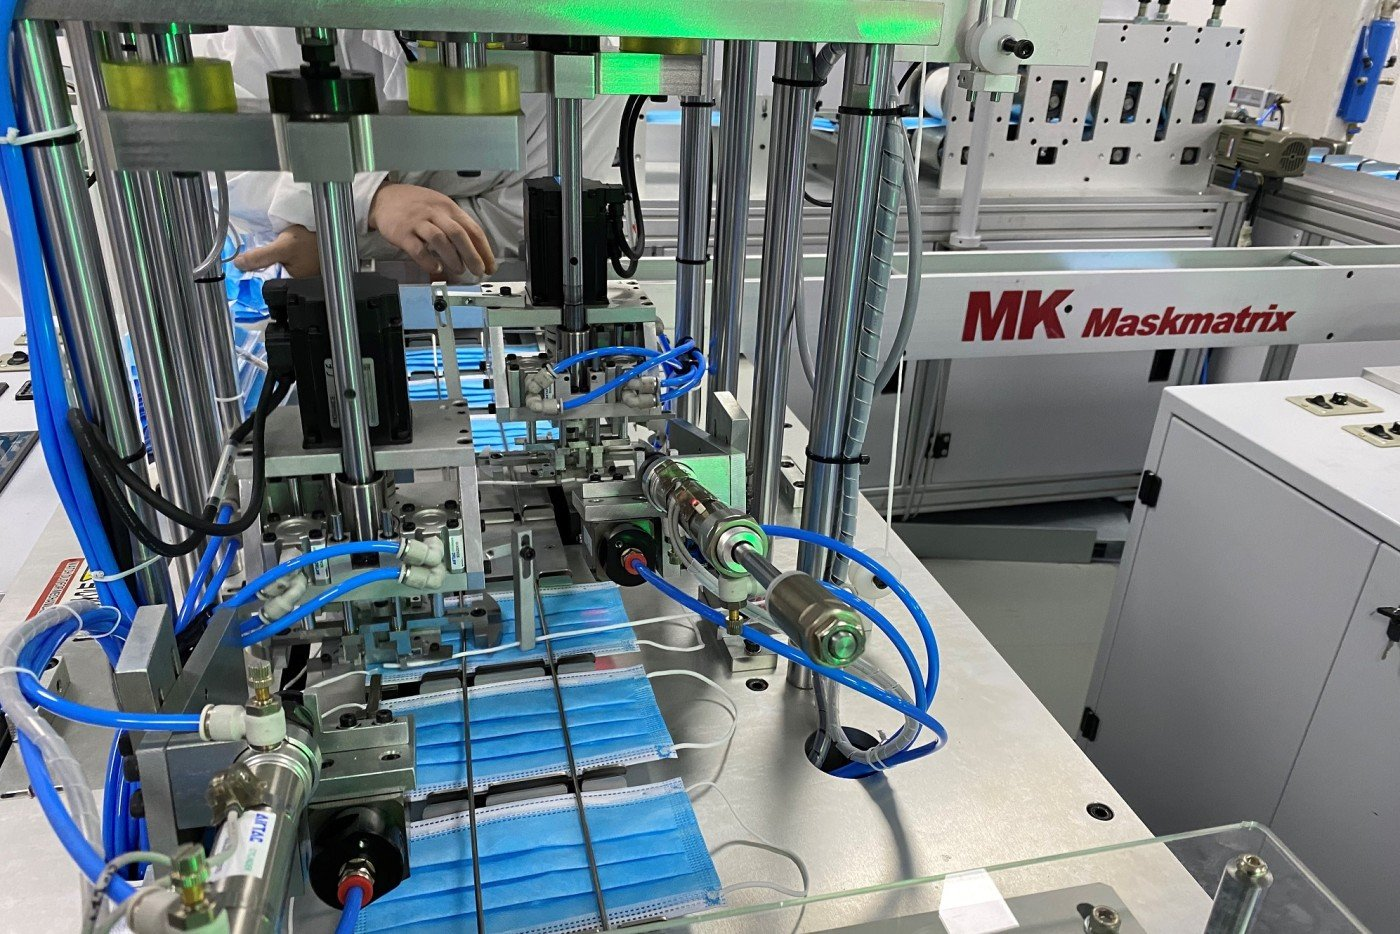 Masterwork MK, partner and largest single shareholder in Heidelberg, founded MK healthy Co., Ltd. at the end of February, and has entered into the production of medical face masks.